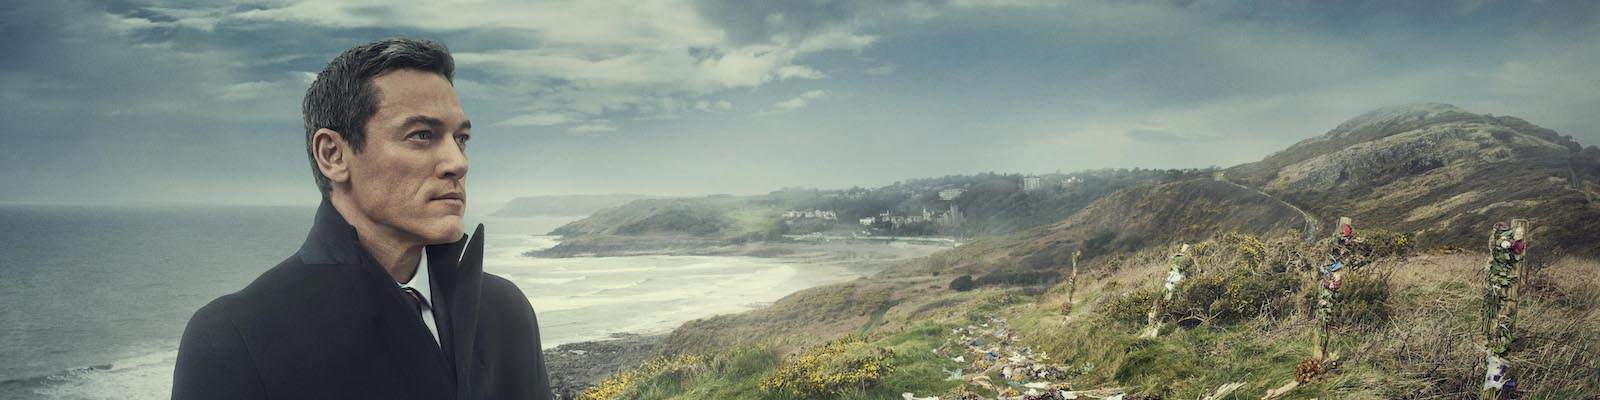 Actor Luke Evans stands near a makeshift memorial of bouquets of flowers on a windswept hill above a beach